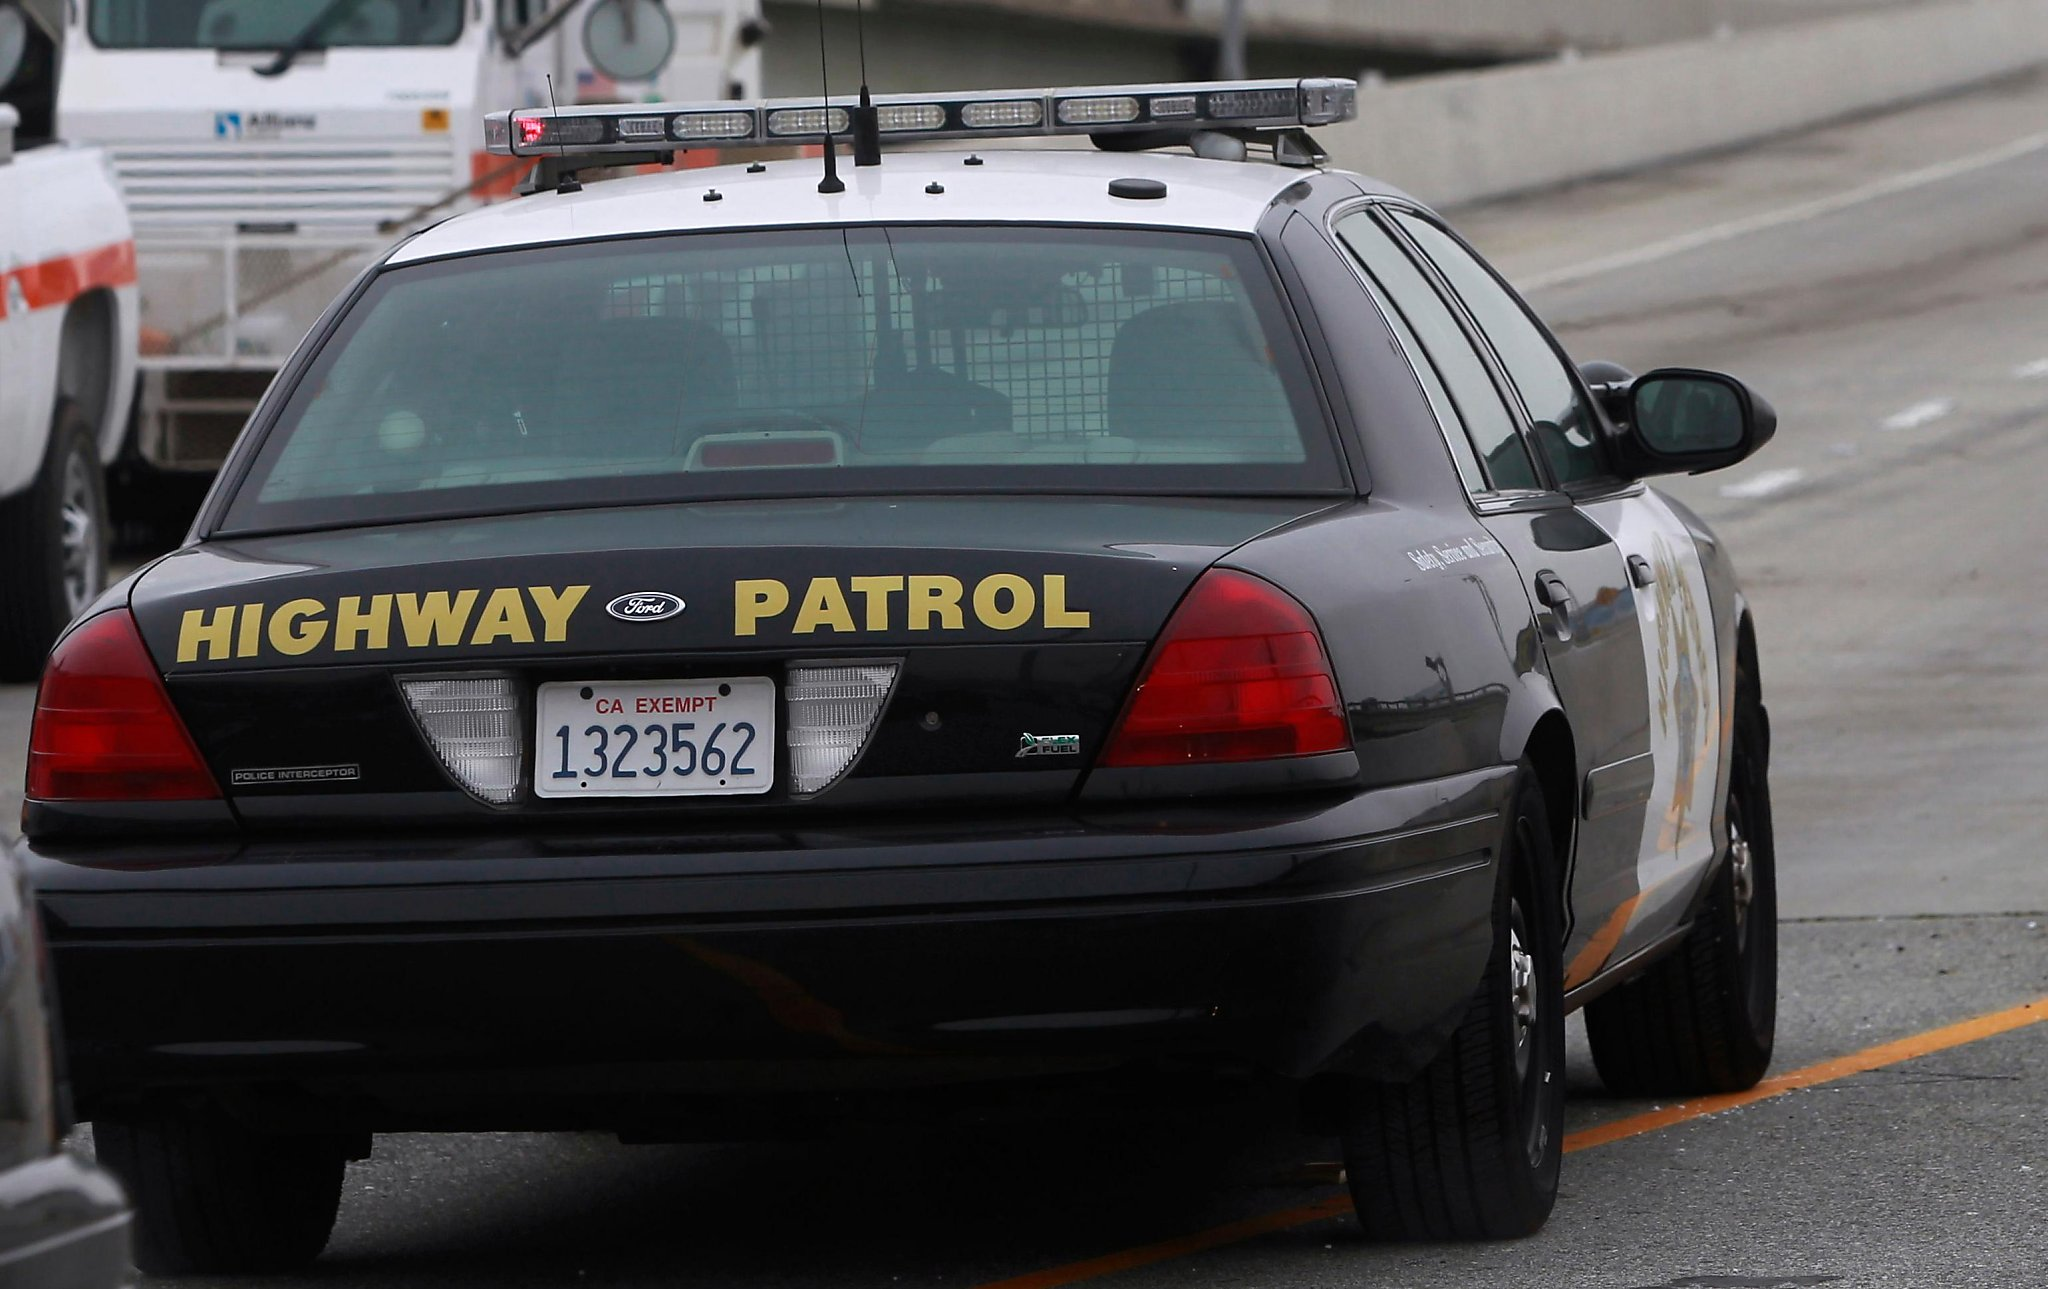 CHP investigating fatal shooting on I-80 in Vacaville - SFChronicle com